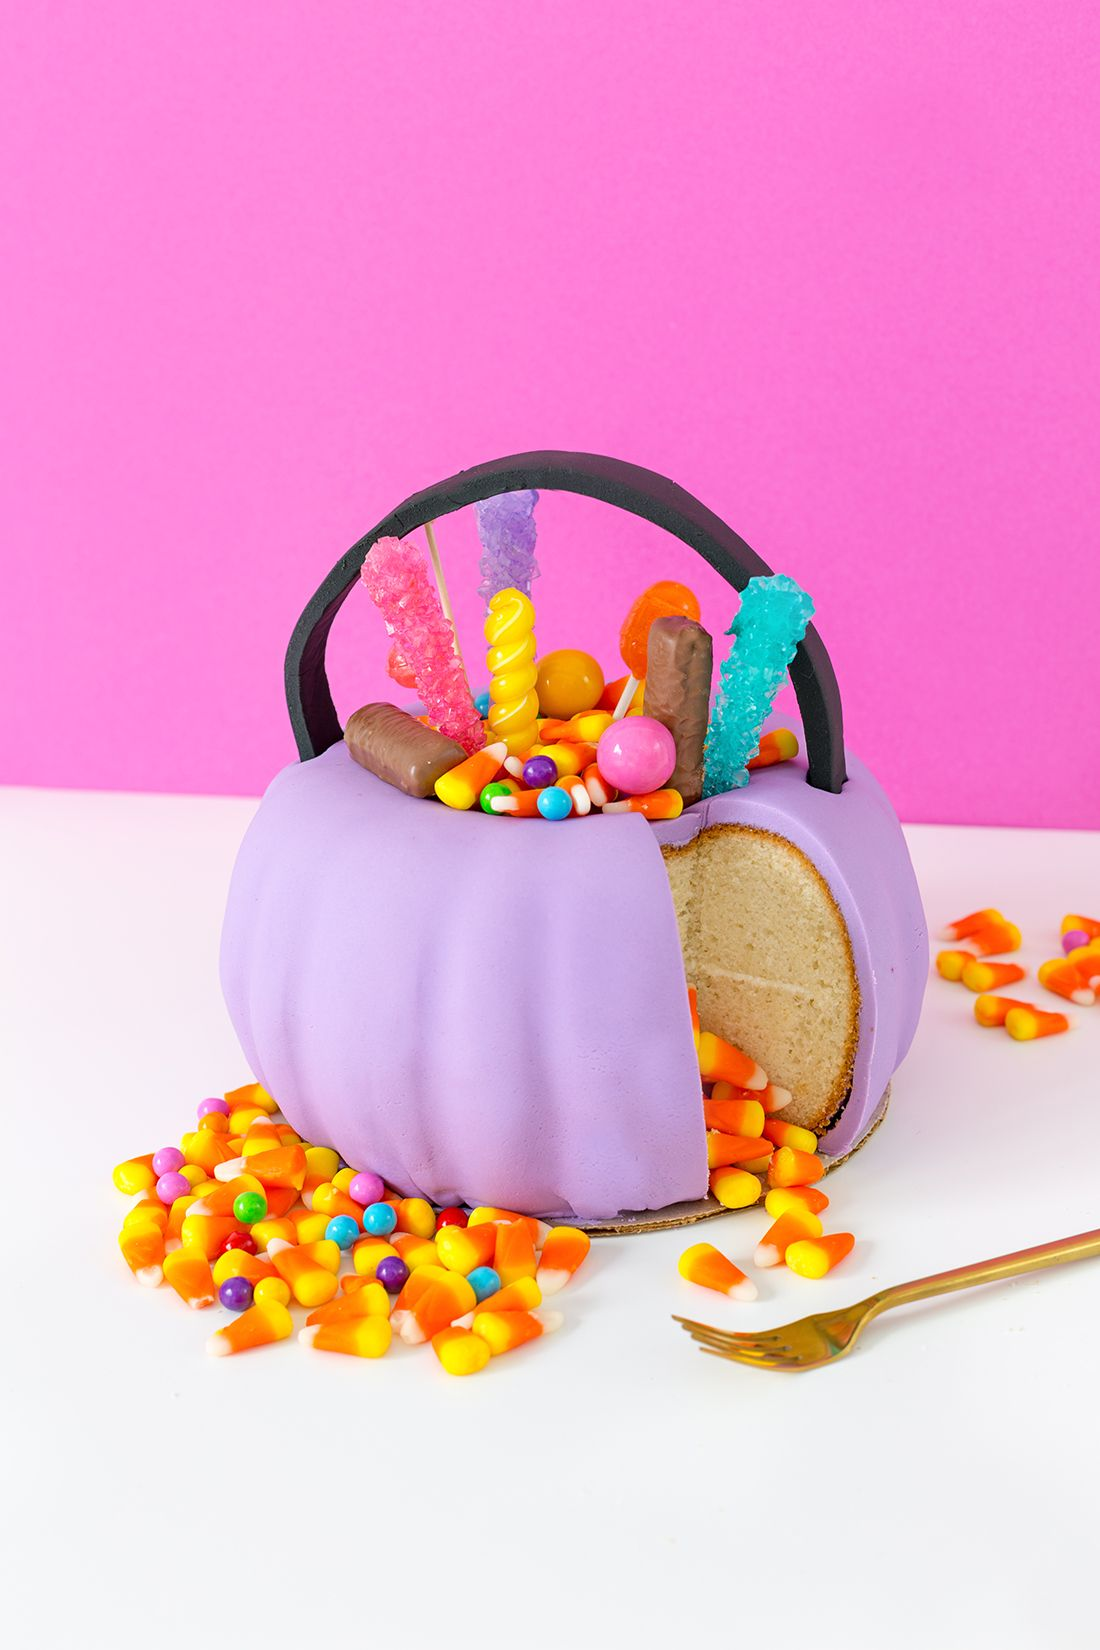 62 Easy Halloween Cakes - Recipes and Halloween Cake Decorating Ideas